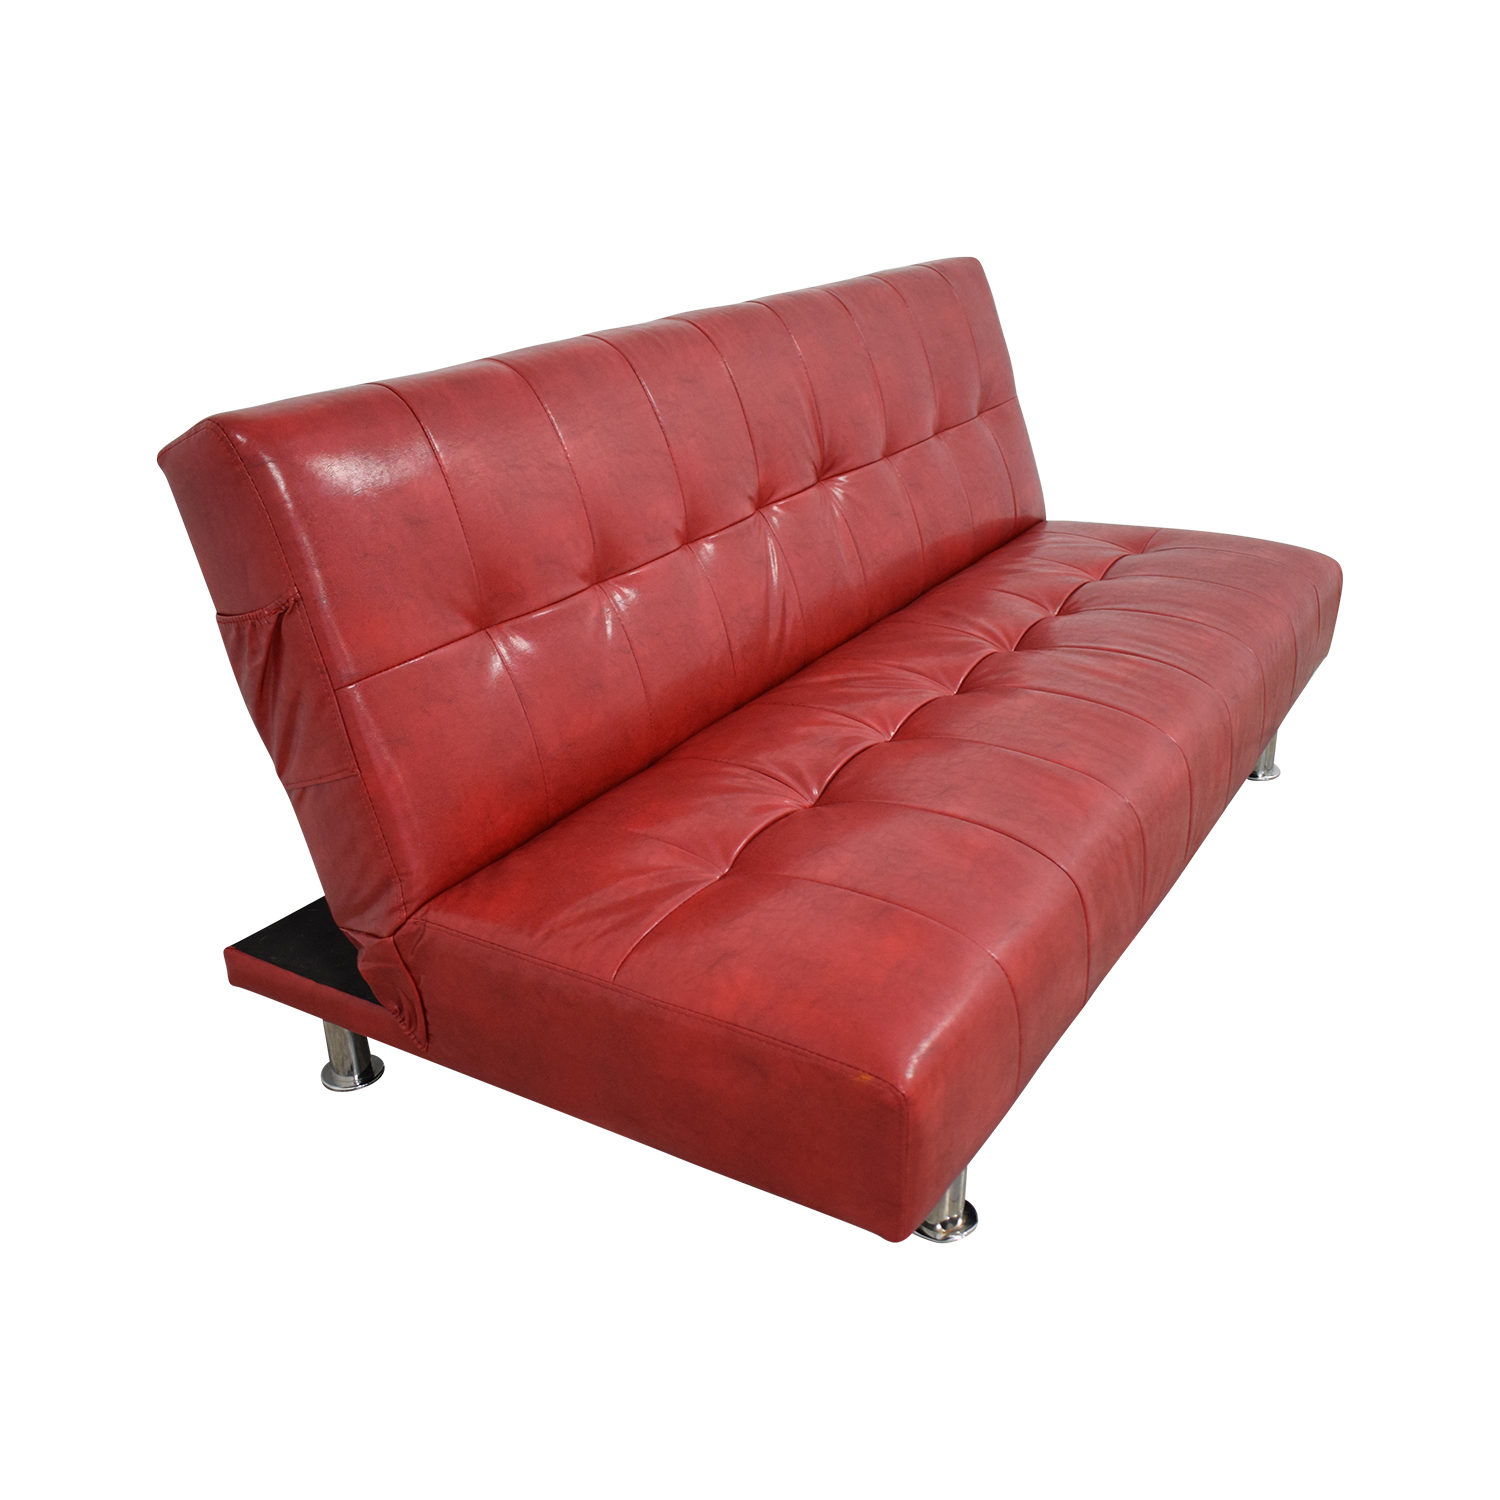 Awesome 75 Off Macys Macys Red Faux Leather Sofa Futon Sofas Theyellowbook Wood Chair Design Ideas Theyellowbookinfo